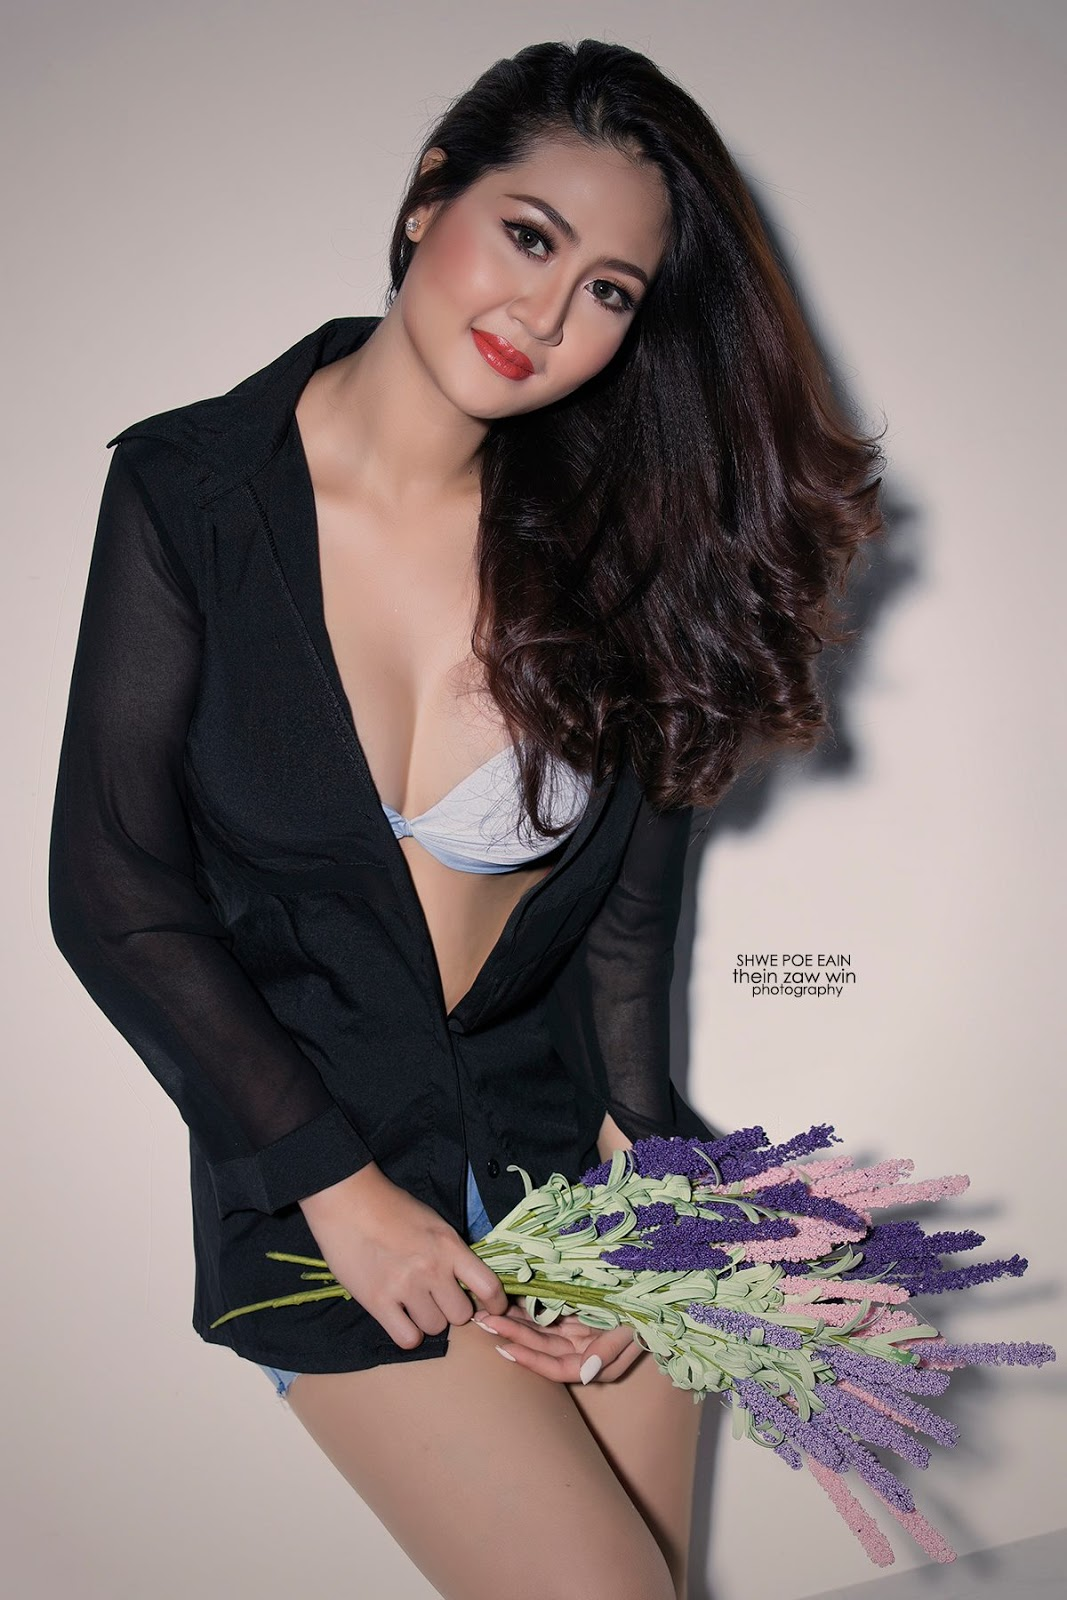 Shwe Poe Eain - Beauty Style Studio Fashion Photoshoot In Black Outfit